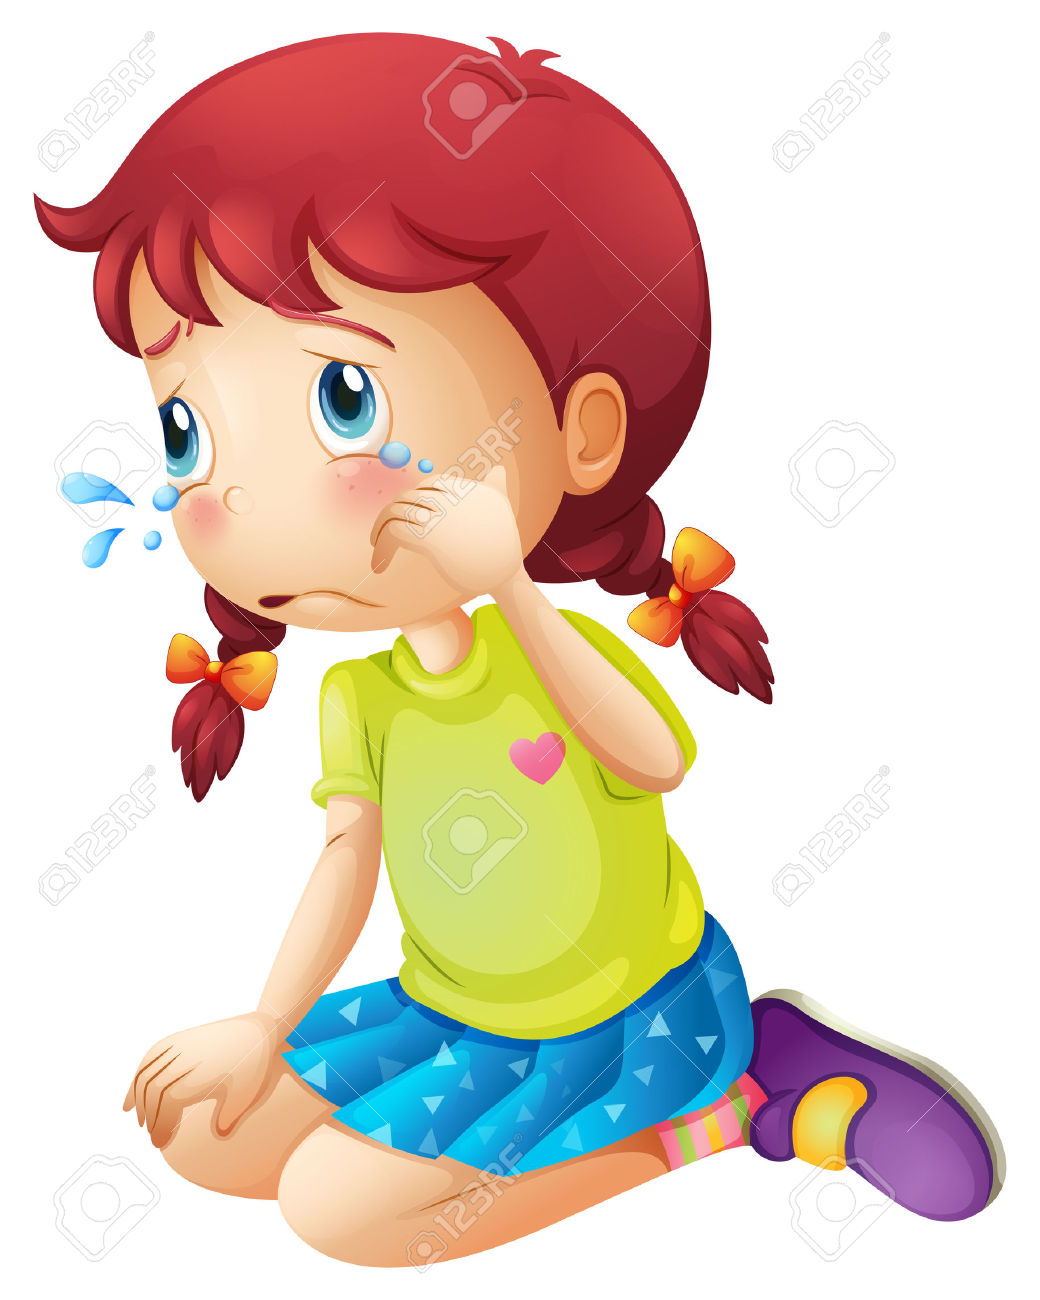 crying clipart free - Clipground